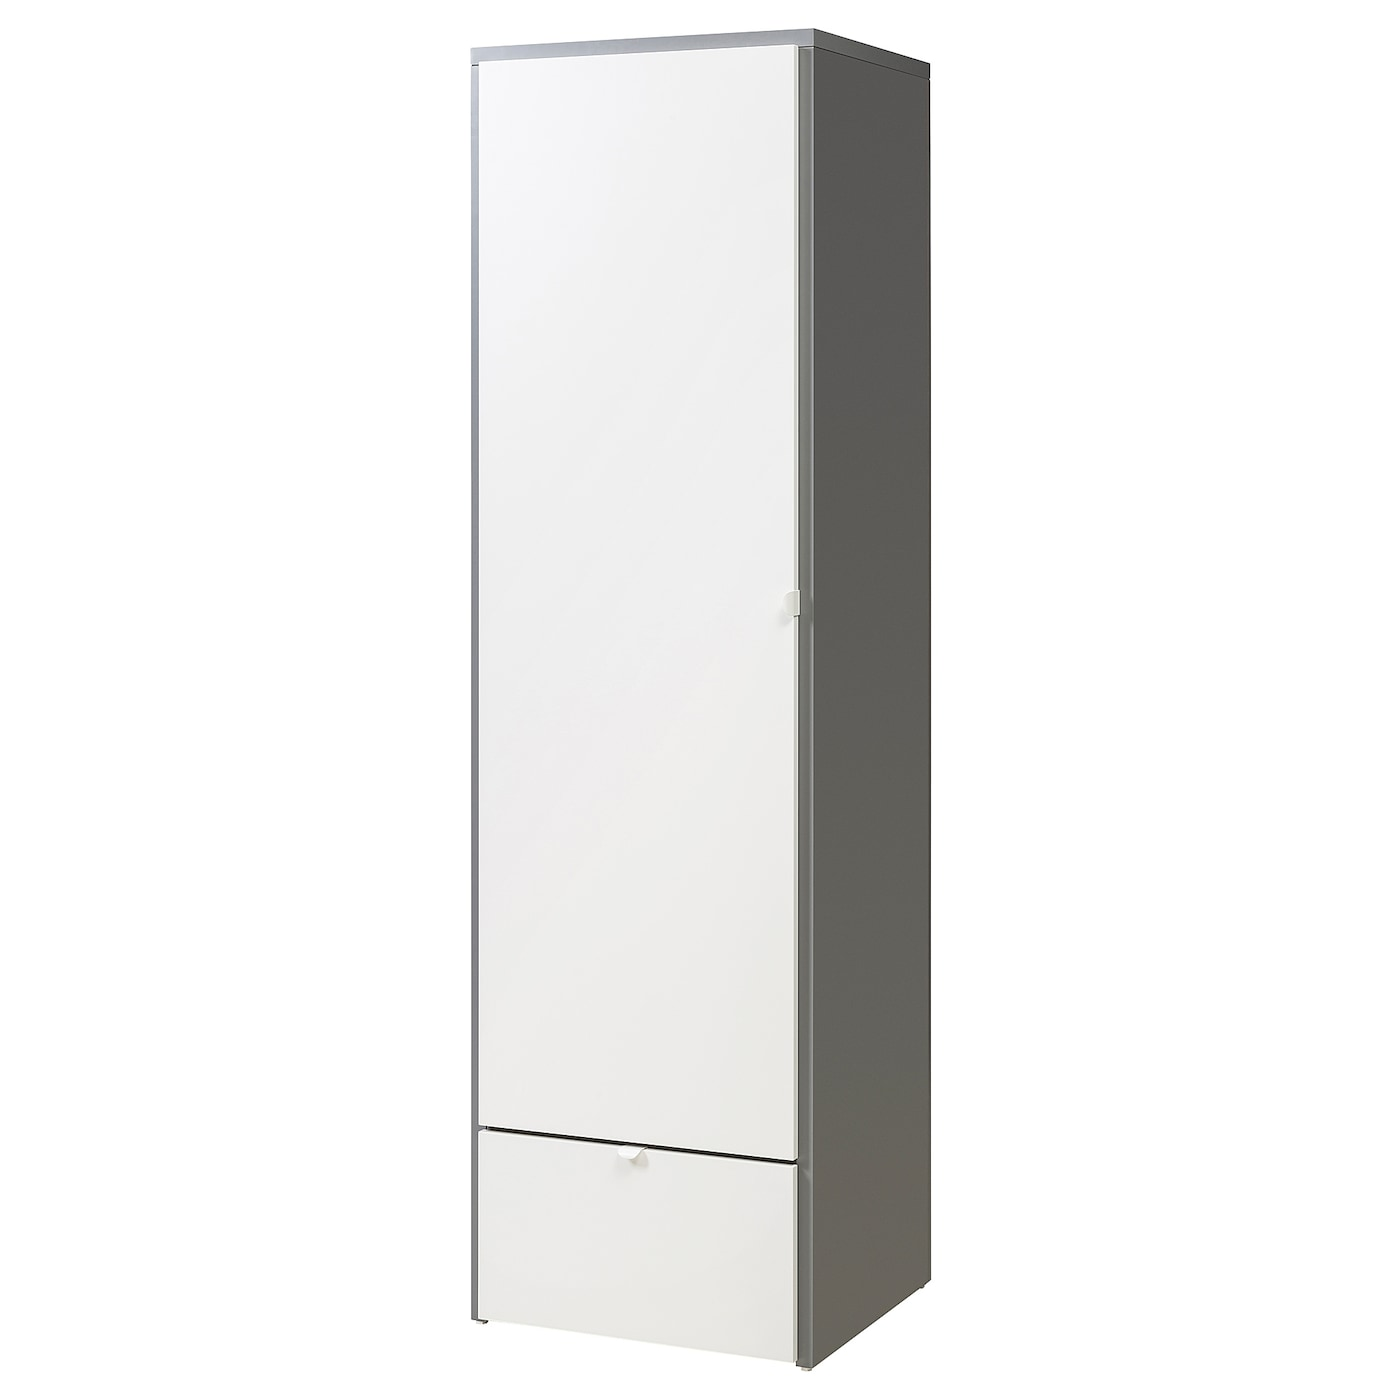 Visthus wardrobe grey white 63x59x216 cm ikea for Miroir 30 cm largeur